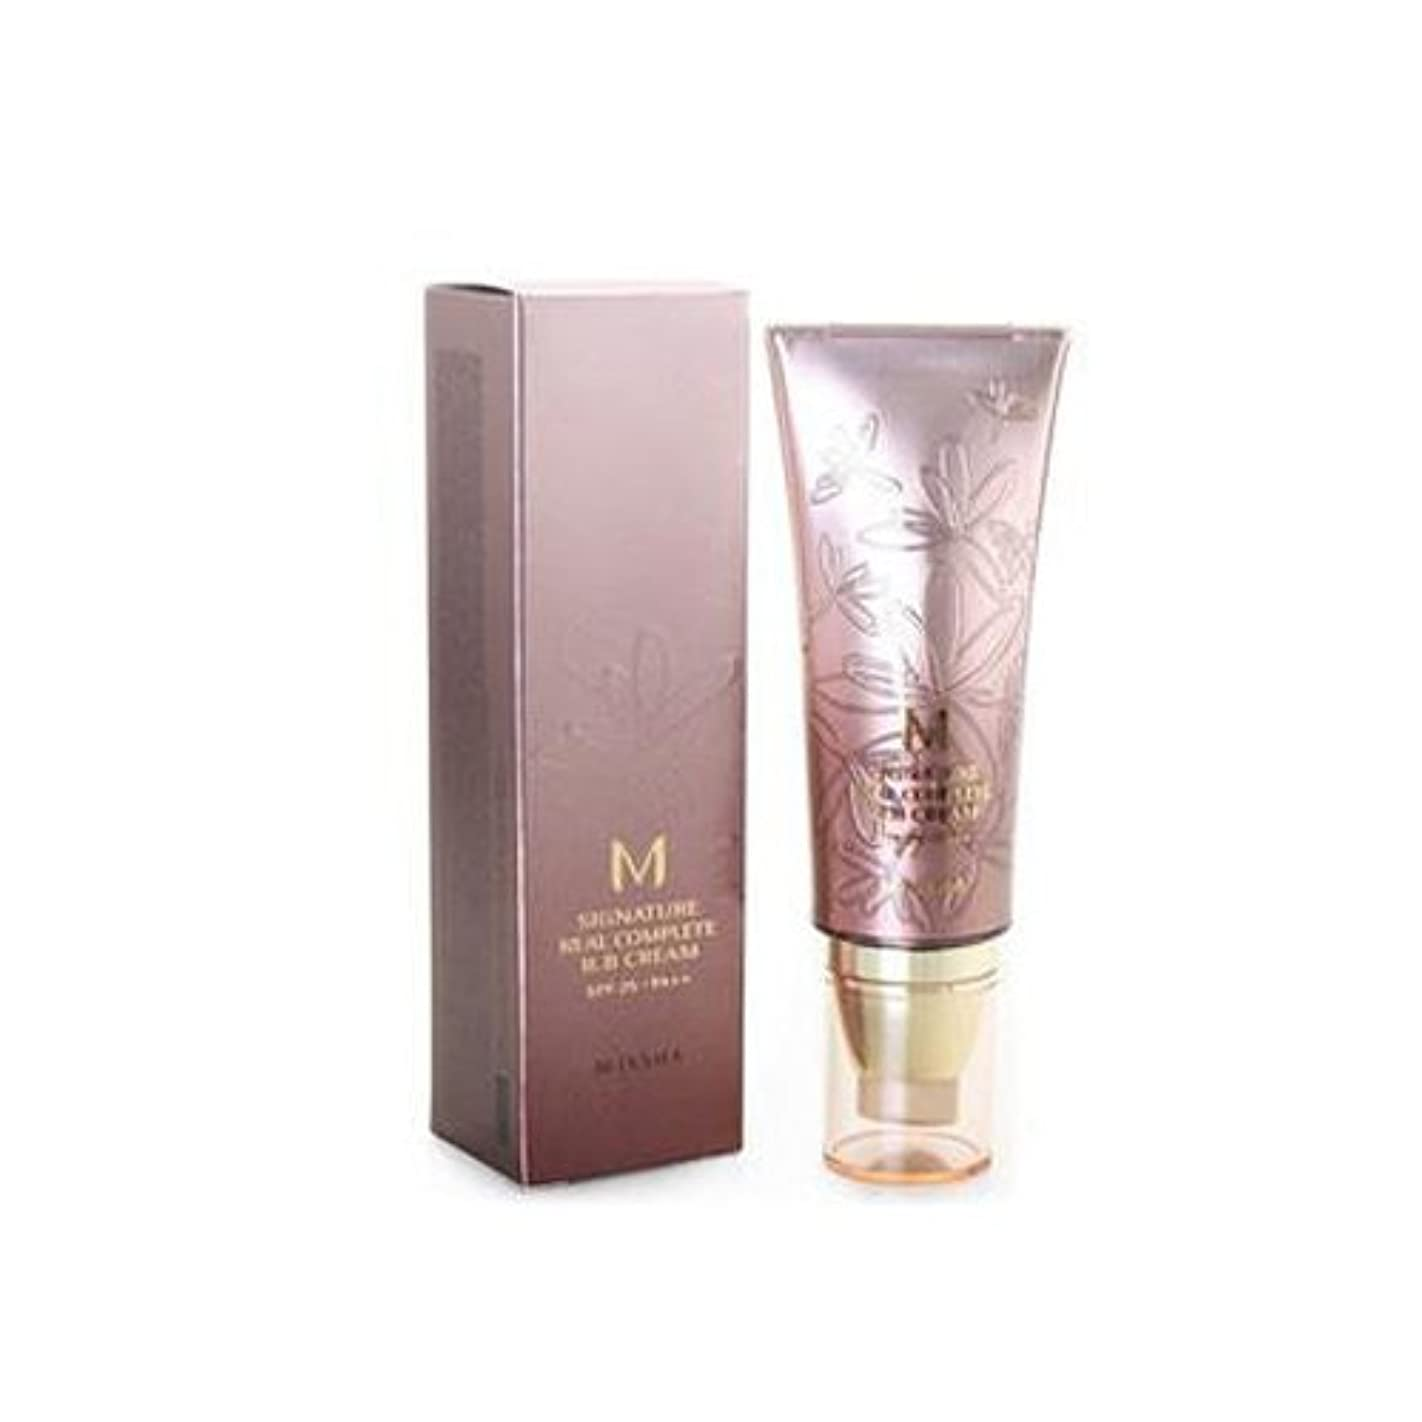 MISSHA M Signature Real Complete B.B Cream SPF 25 PA++ No. 21 Light Pink Beige (並行輸入品)